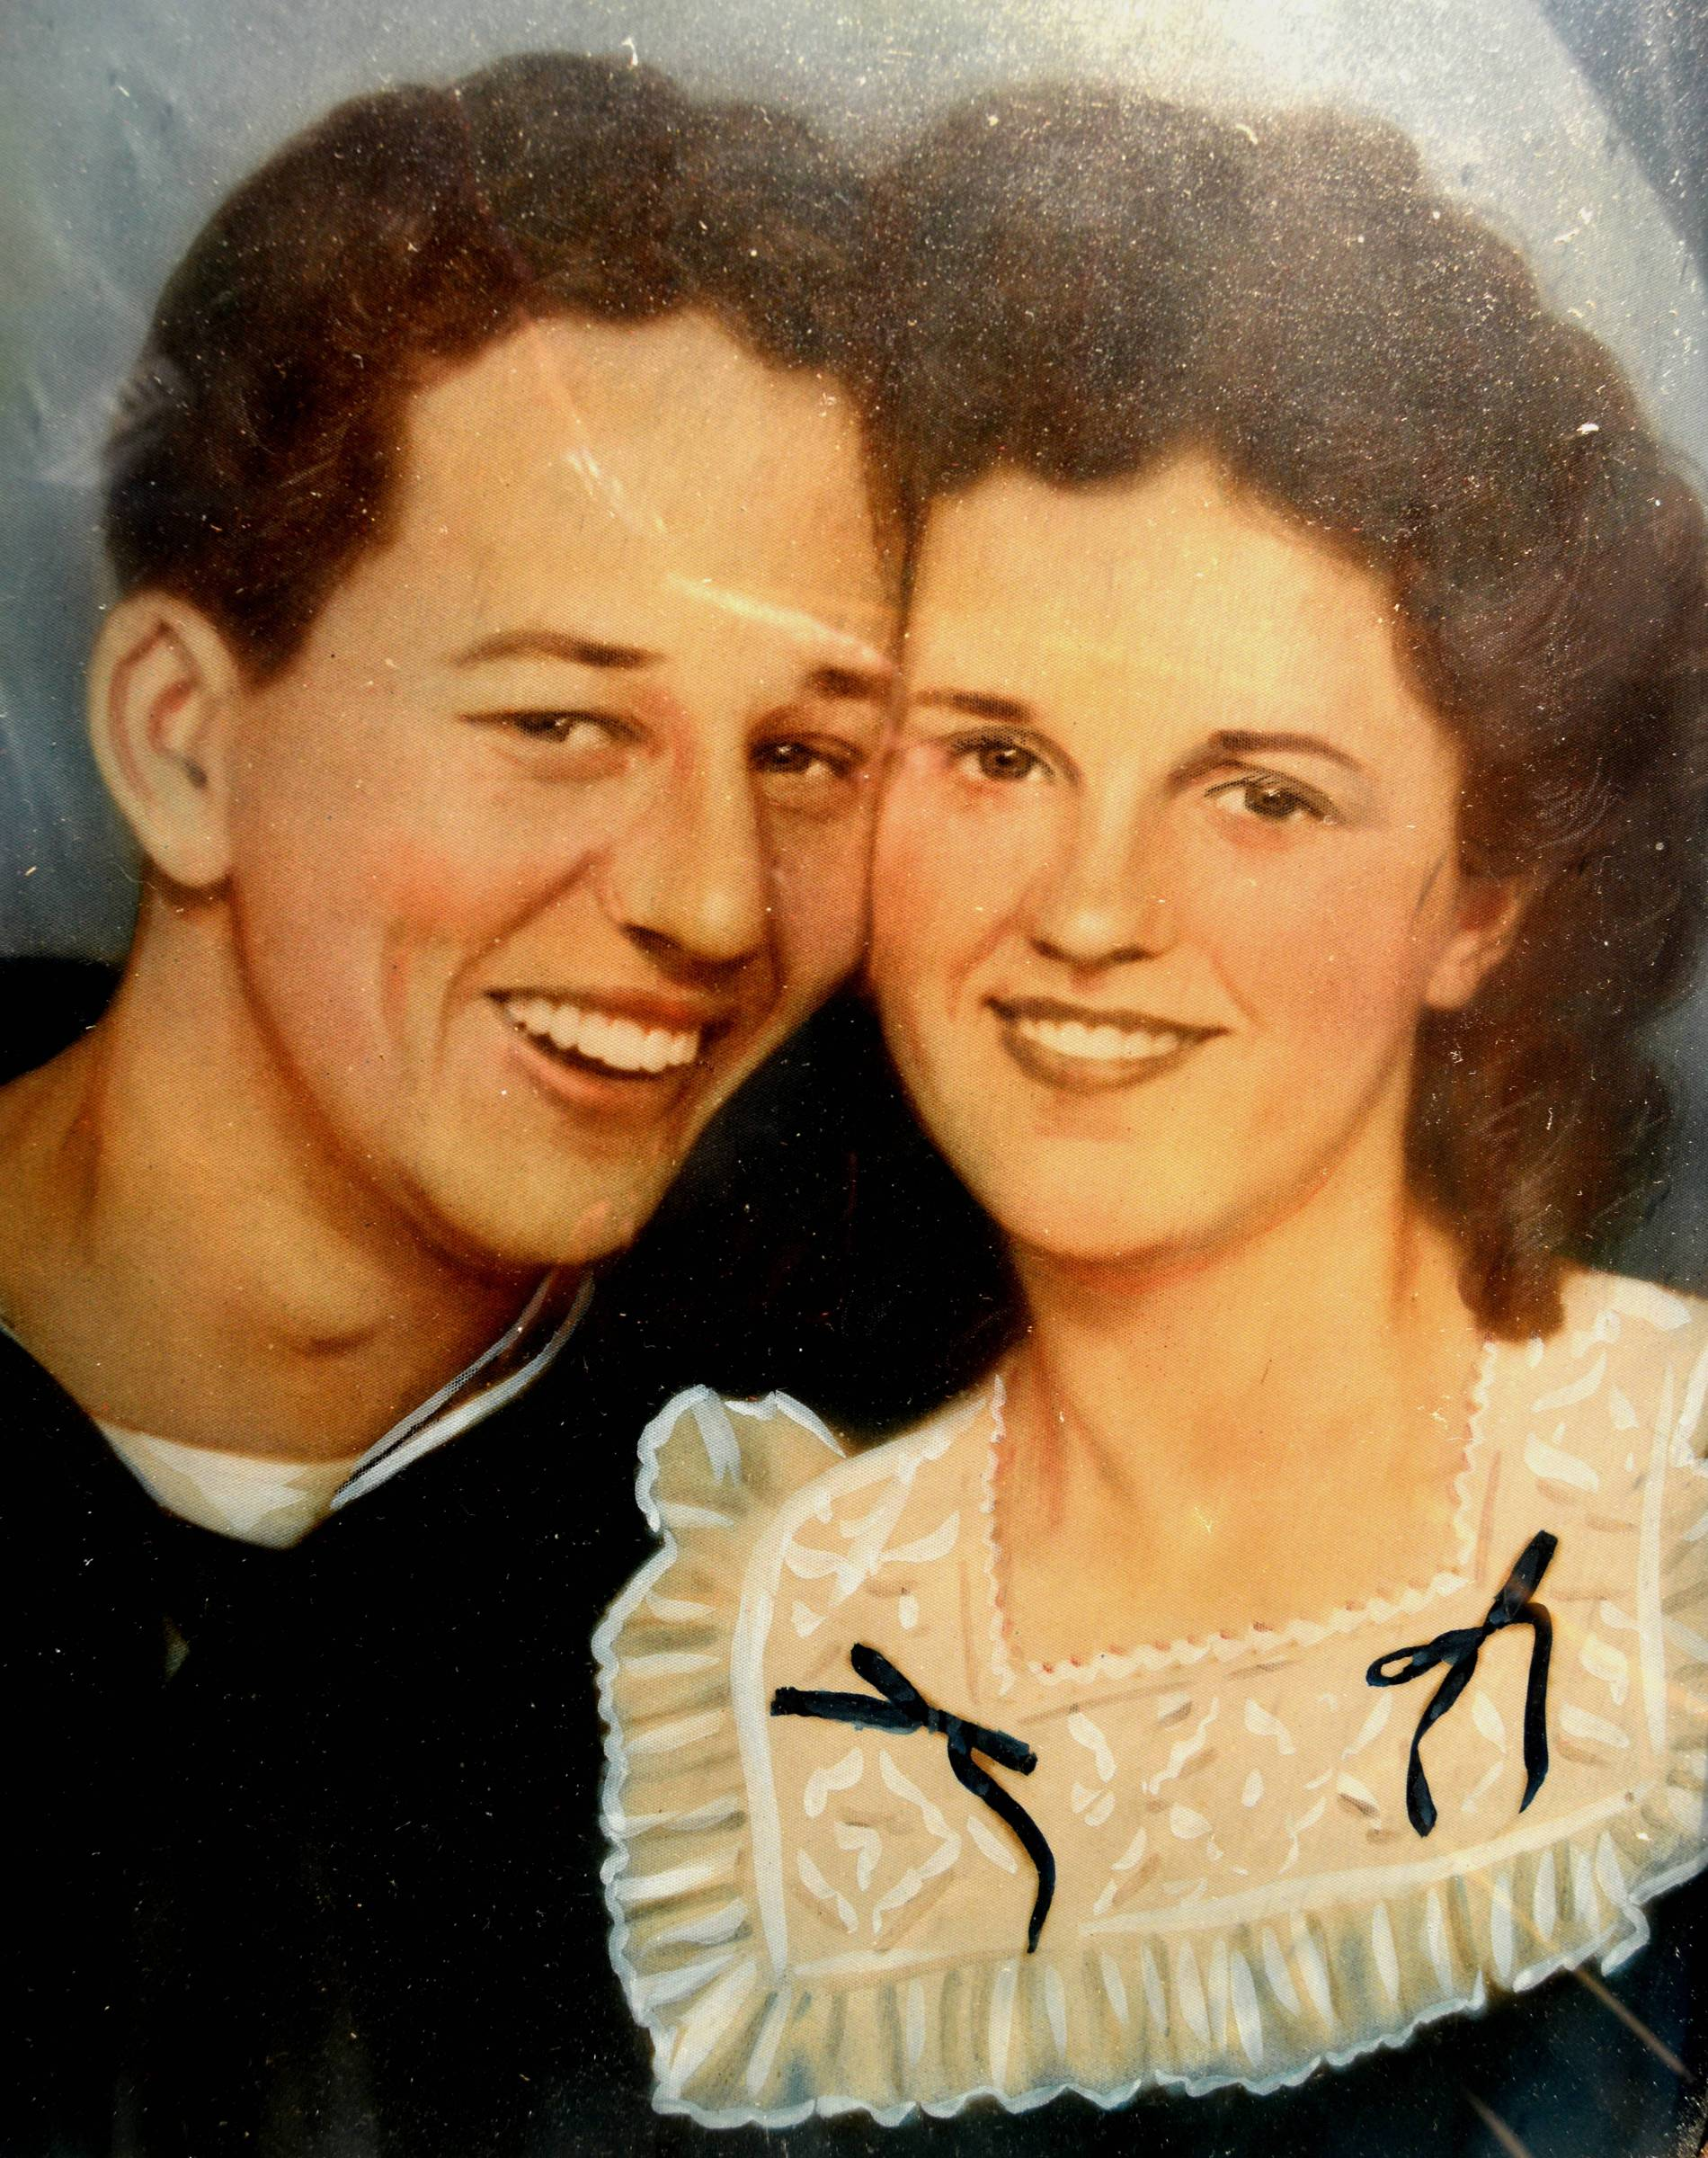 Caption: Bill and Odelle Berkley shortly after they got married.